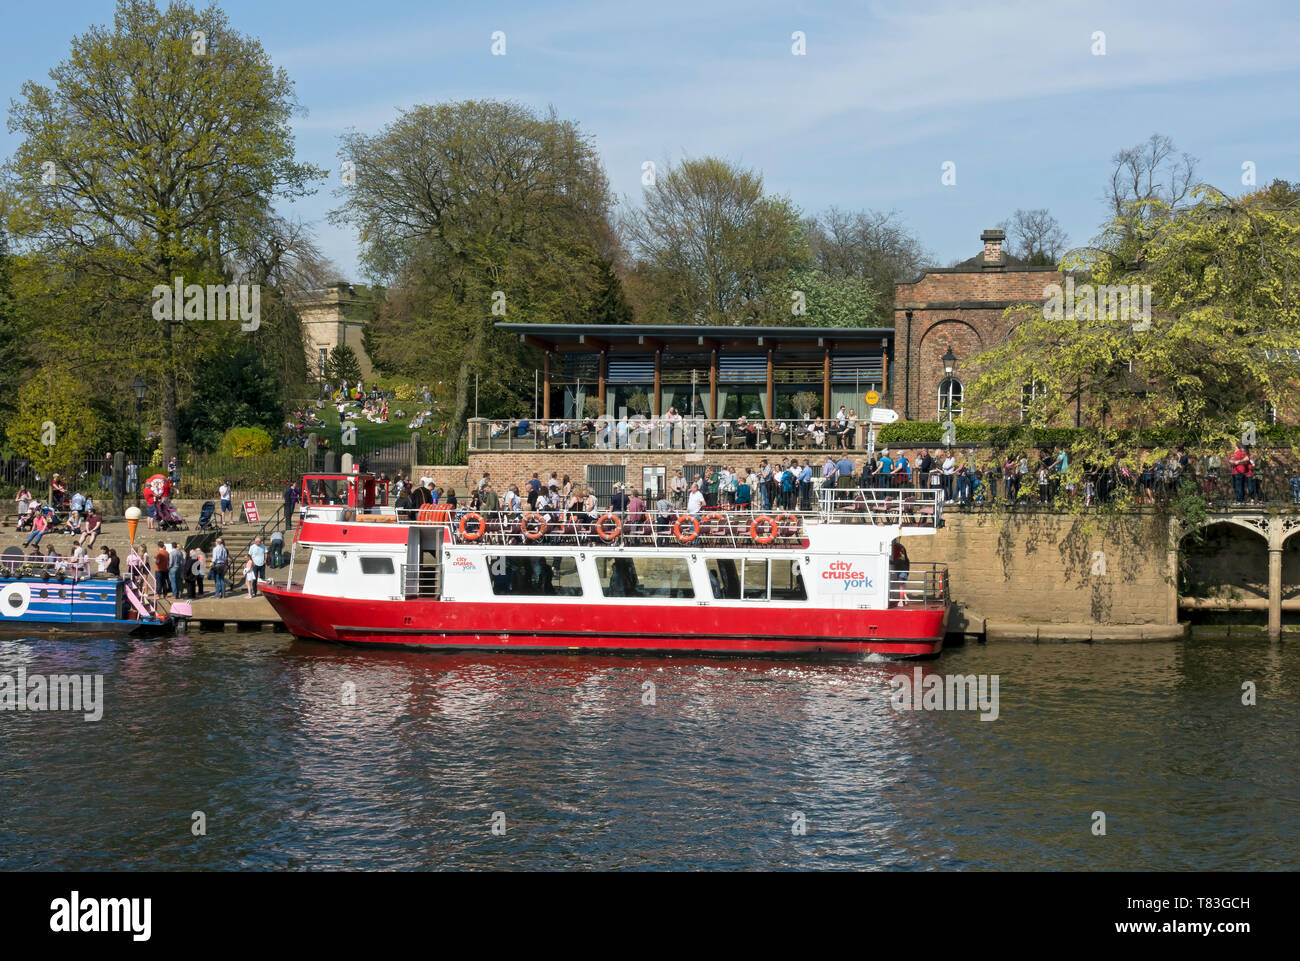 The Star Inn the City Restaurant, and Riverside Boat Cruises York North Yorkshire England UK United Kingdom GB Great Britain Stock Photo